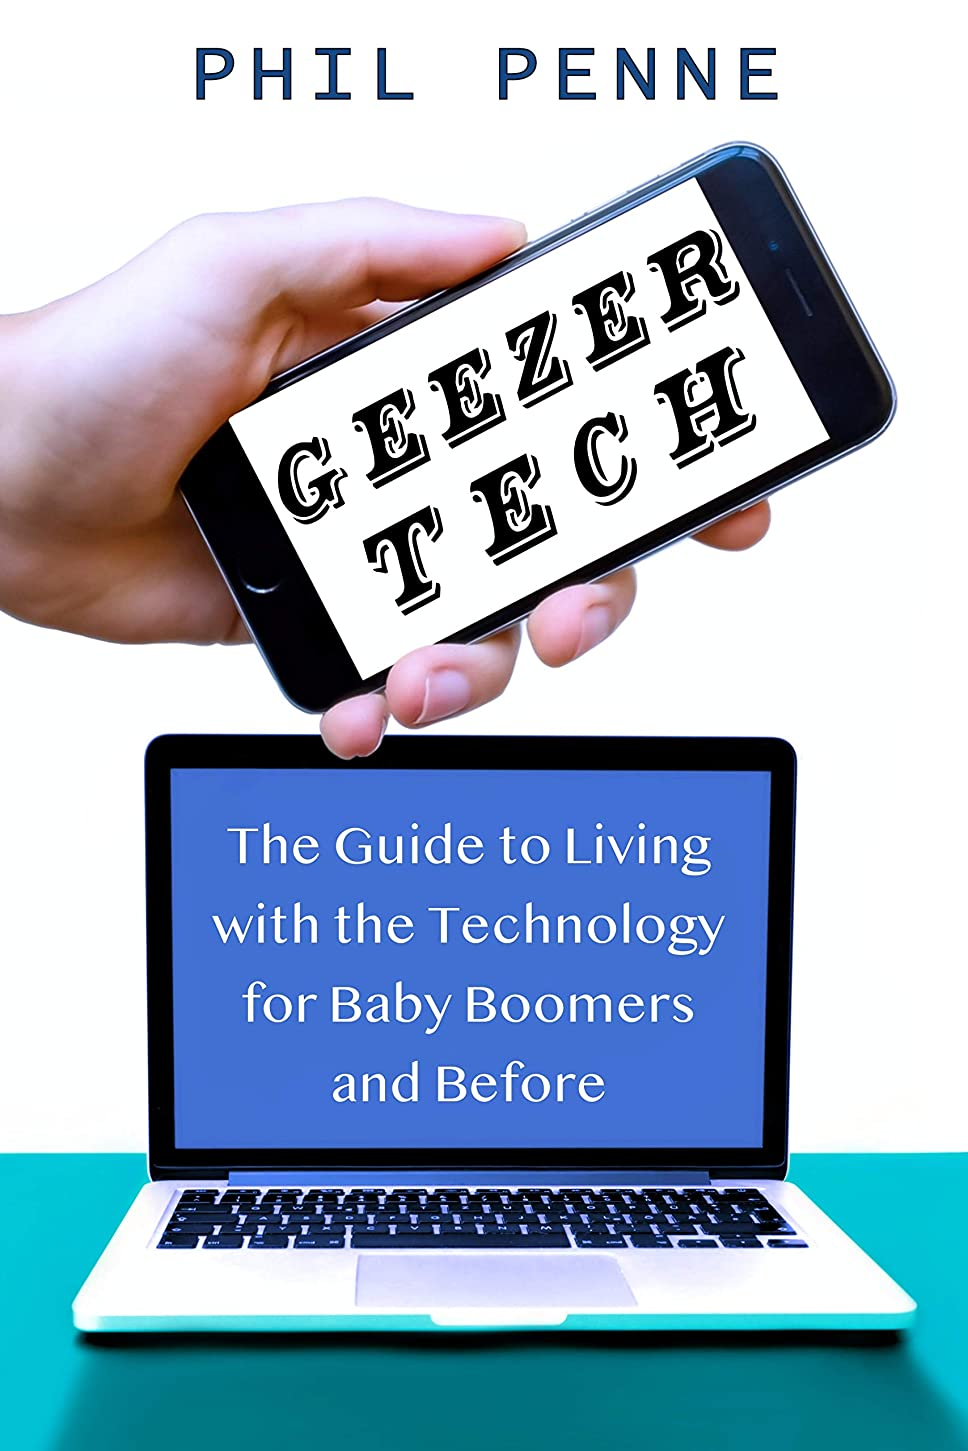 金額代わってシネウィGeezer Tech: The Guide to Living with Technology for Baby Boomers and Before (English Edition)